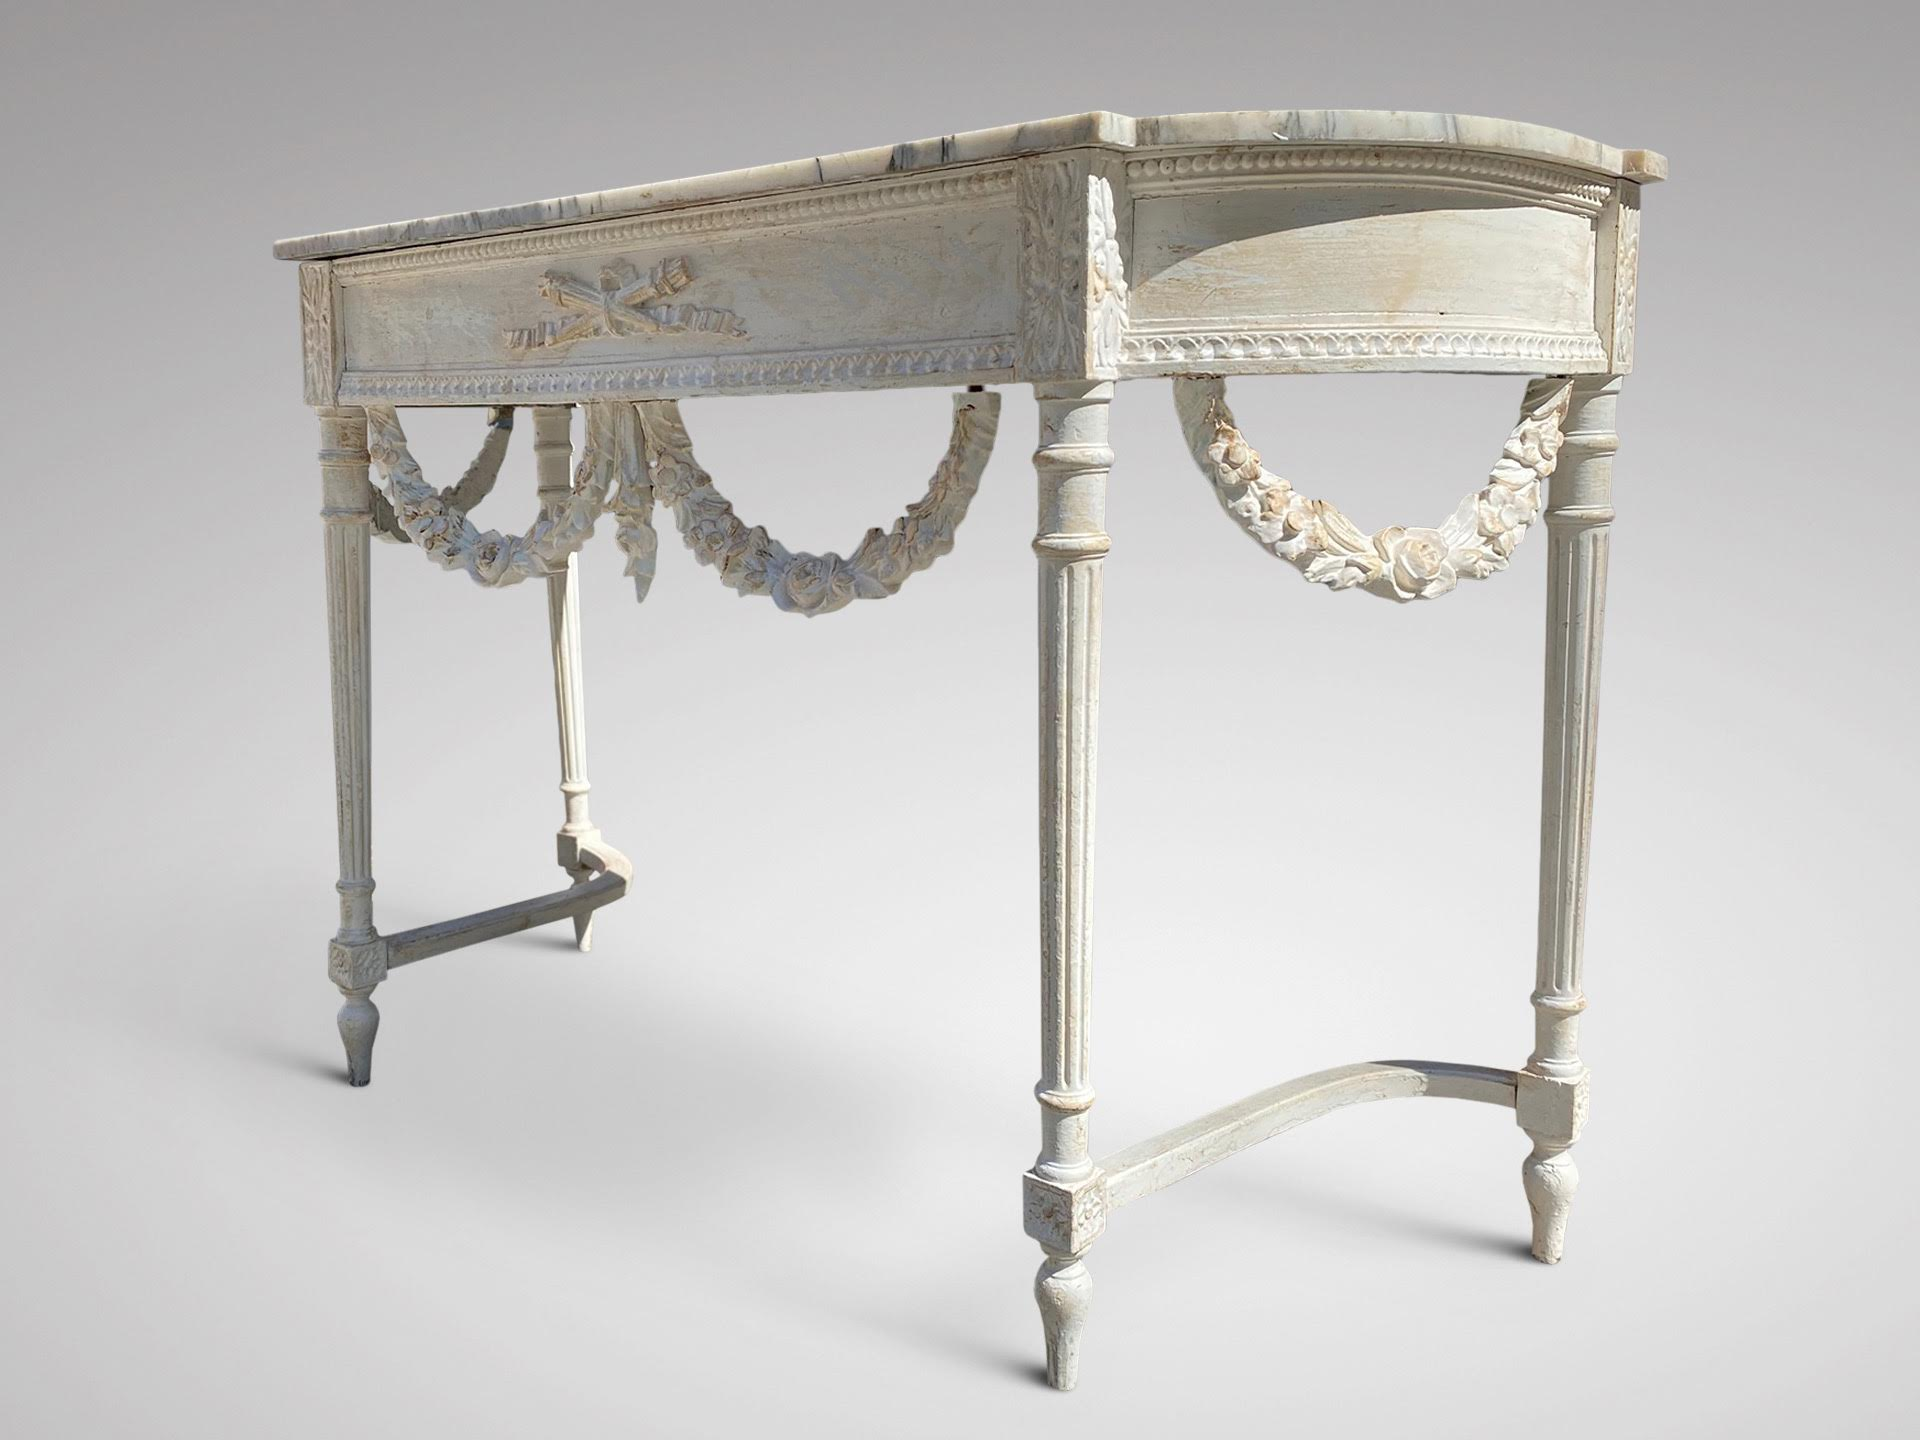 19C FRENCH CARVED PAINTED CONSOLE TABLE IN LOUIS XVI STYLE